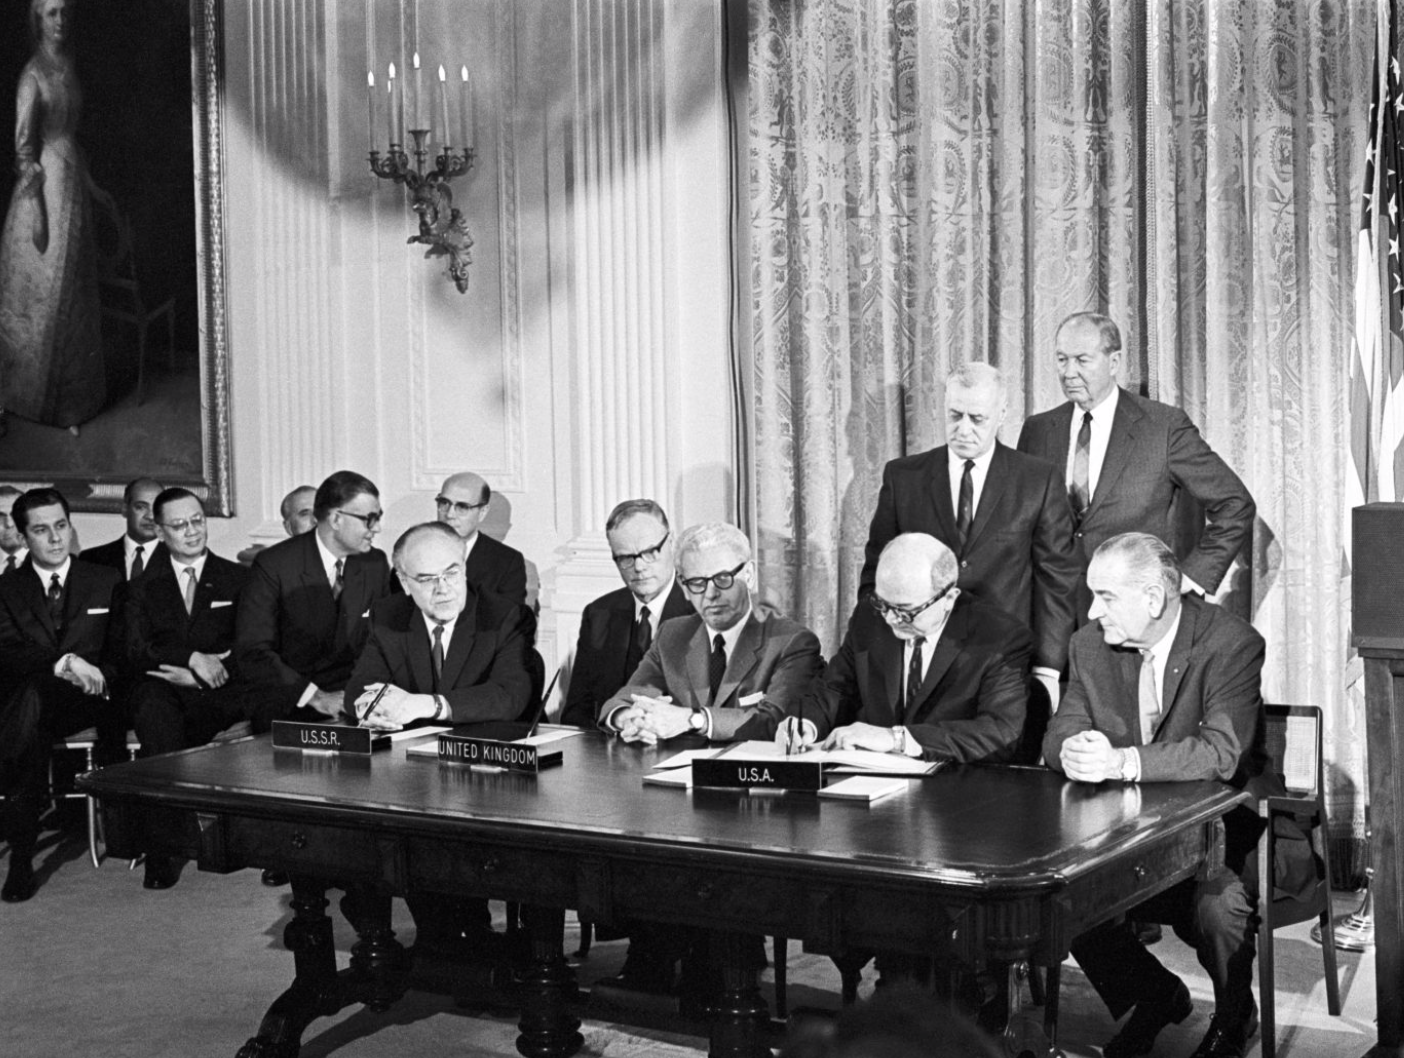 the signing of the outer space treaty, 1967